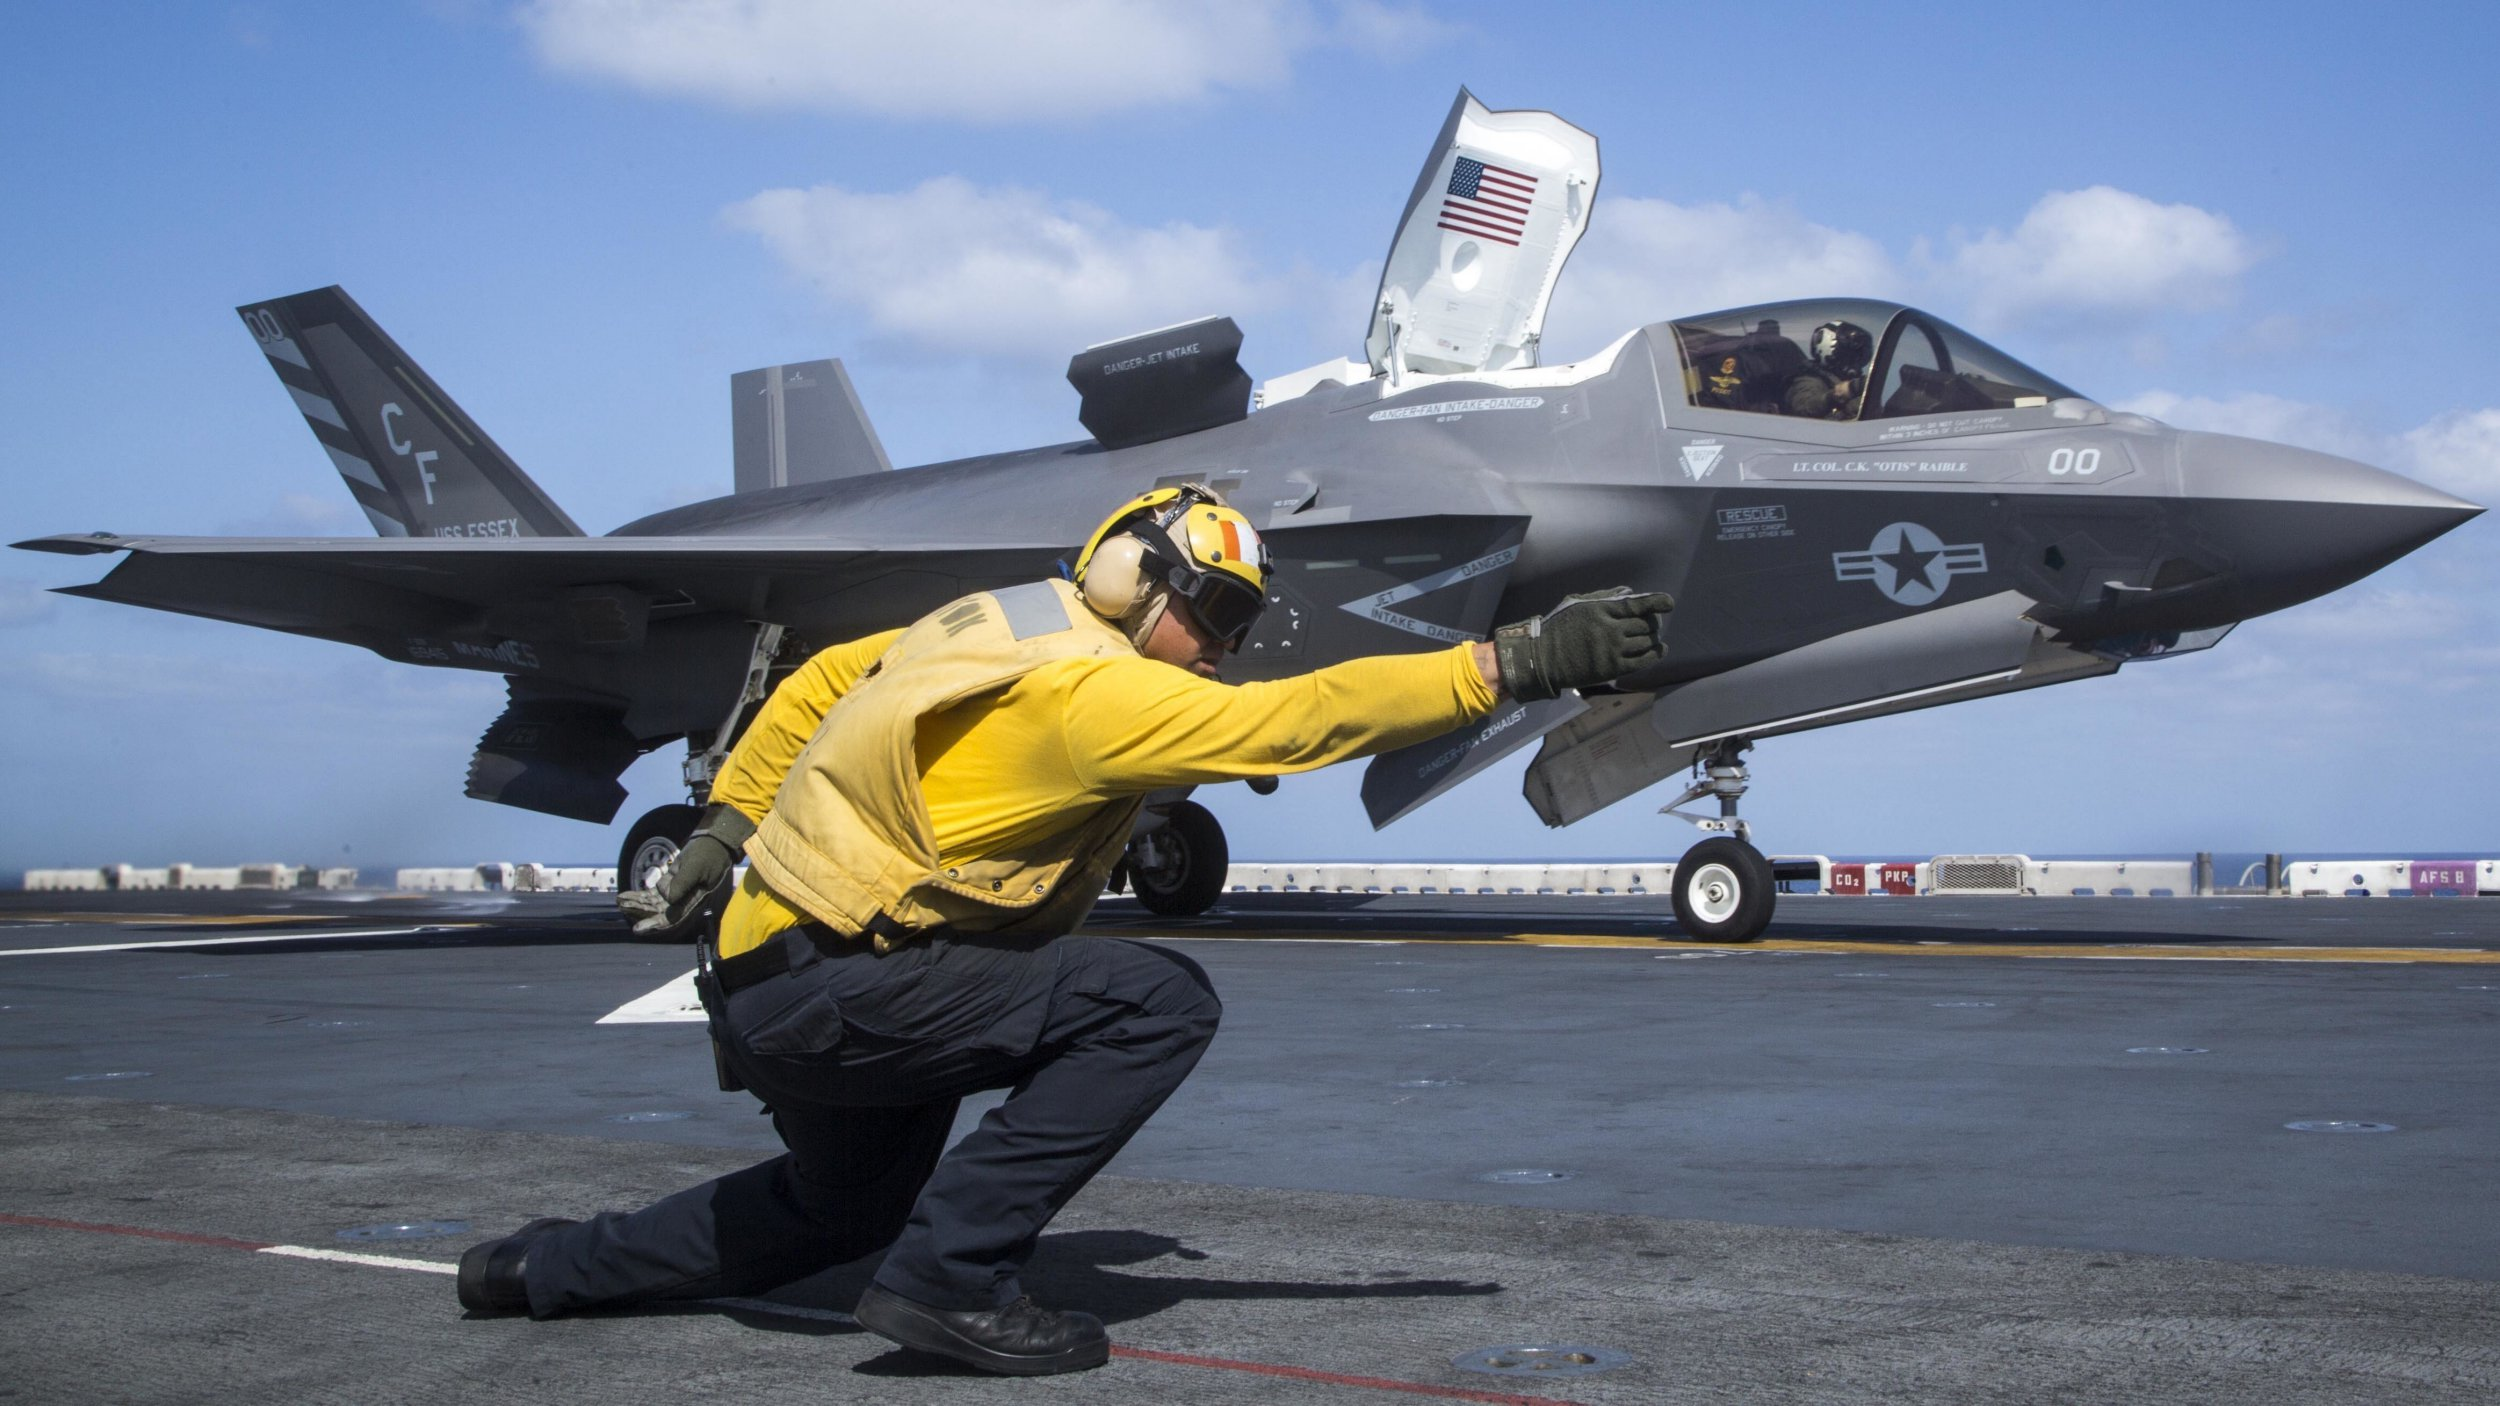 epa07086230 (FILE) - A handout file photo made available by the US Marine Corps on 11 October 2018 shows a US Navy officer launching an F-35B Lightning II from the US Navy Wasp-class amphibious assault ship USS Essex (LHD 2), at sea in the Gulf of Aden, 22 September 2018. The US military announced on 11 October 2018, it grounded its entire F-35 fighter jets fleet in the wake of a jet crash - its first crash of an F-35 aircraft - in South Carolina in September. The Pentagon will investigate a potential issue on faulty fuel tubes. The aircraft are the most expensive ever made. EPA/US MARINE CORPS/CPL. FRANCISCO J. DIAZ JR. HANDOUT HANDOUT EDITORIAL USE ONLY/NO SALES